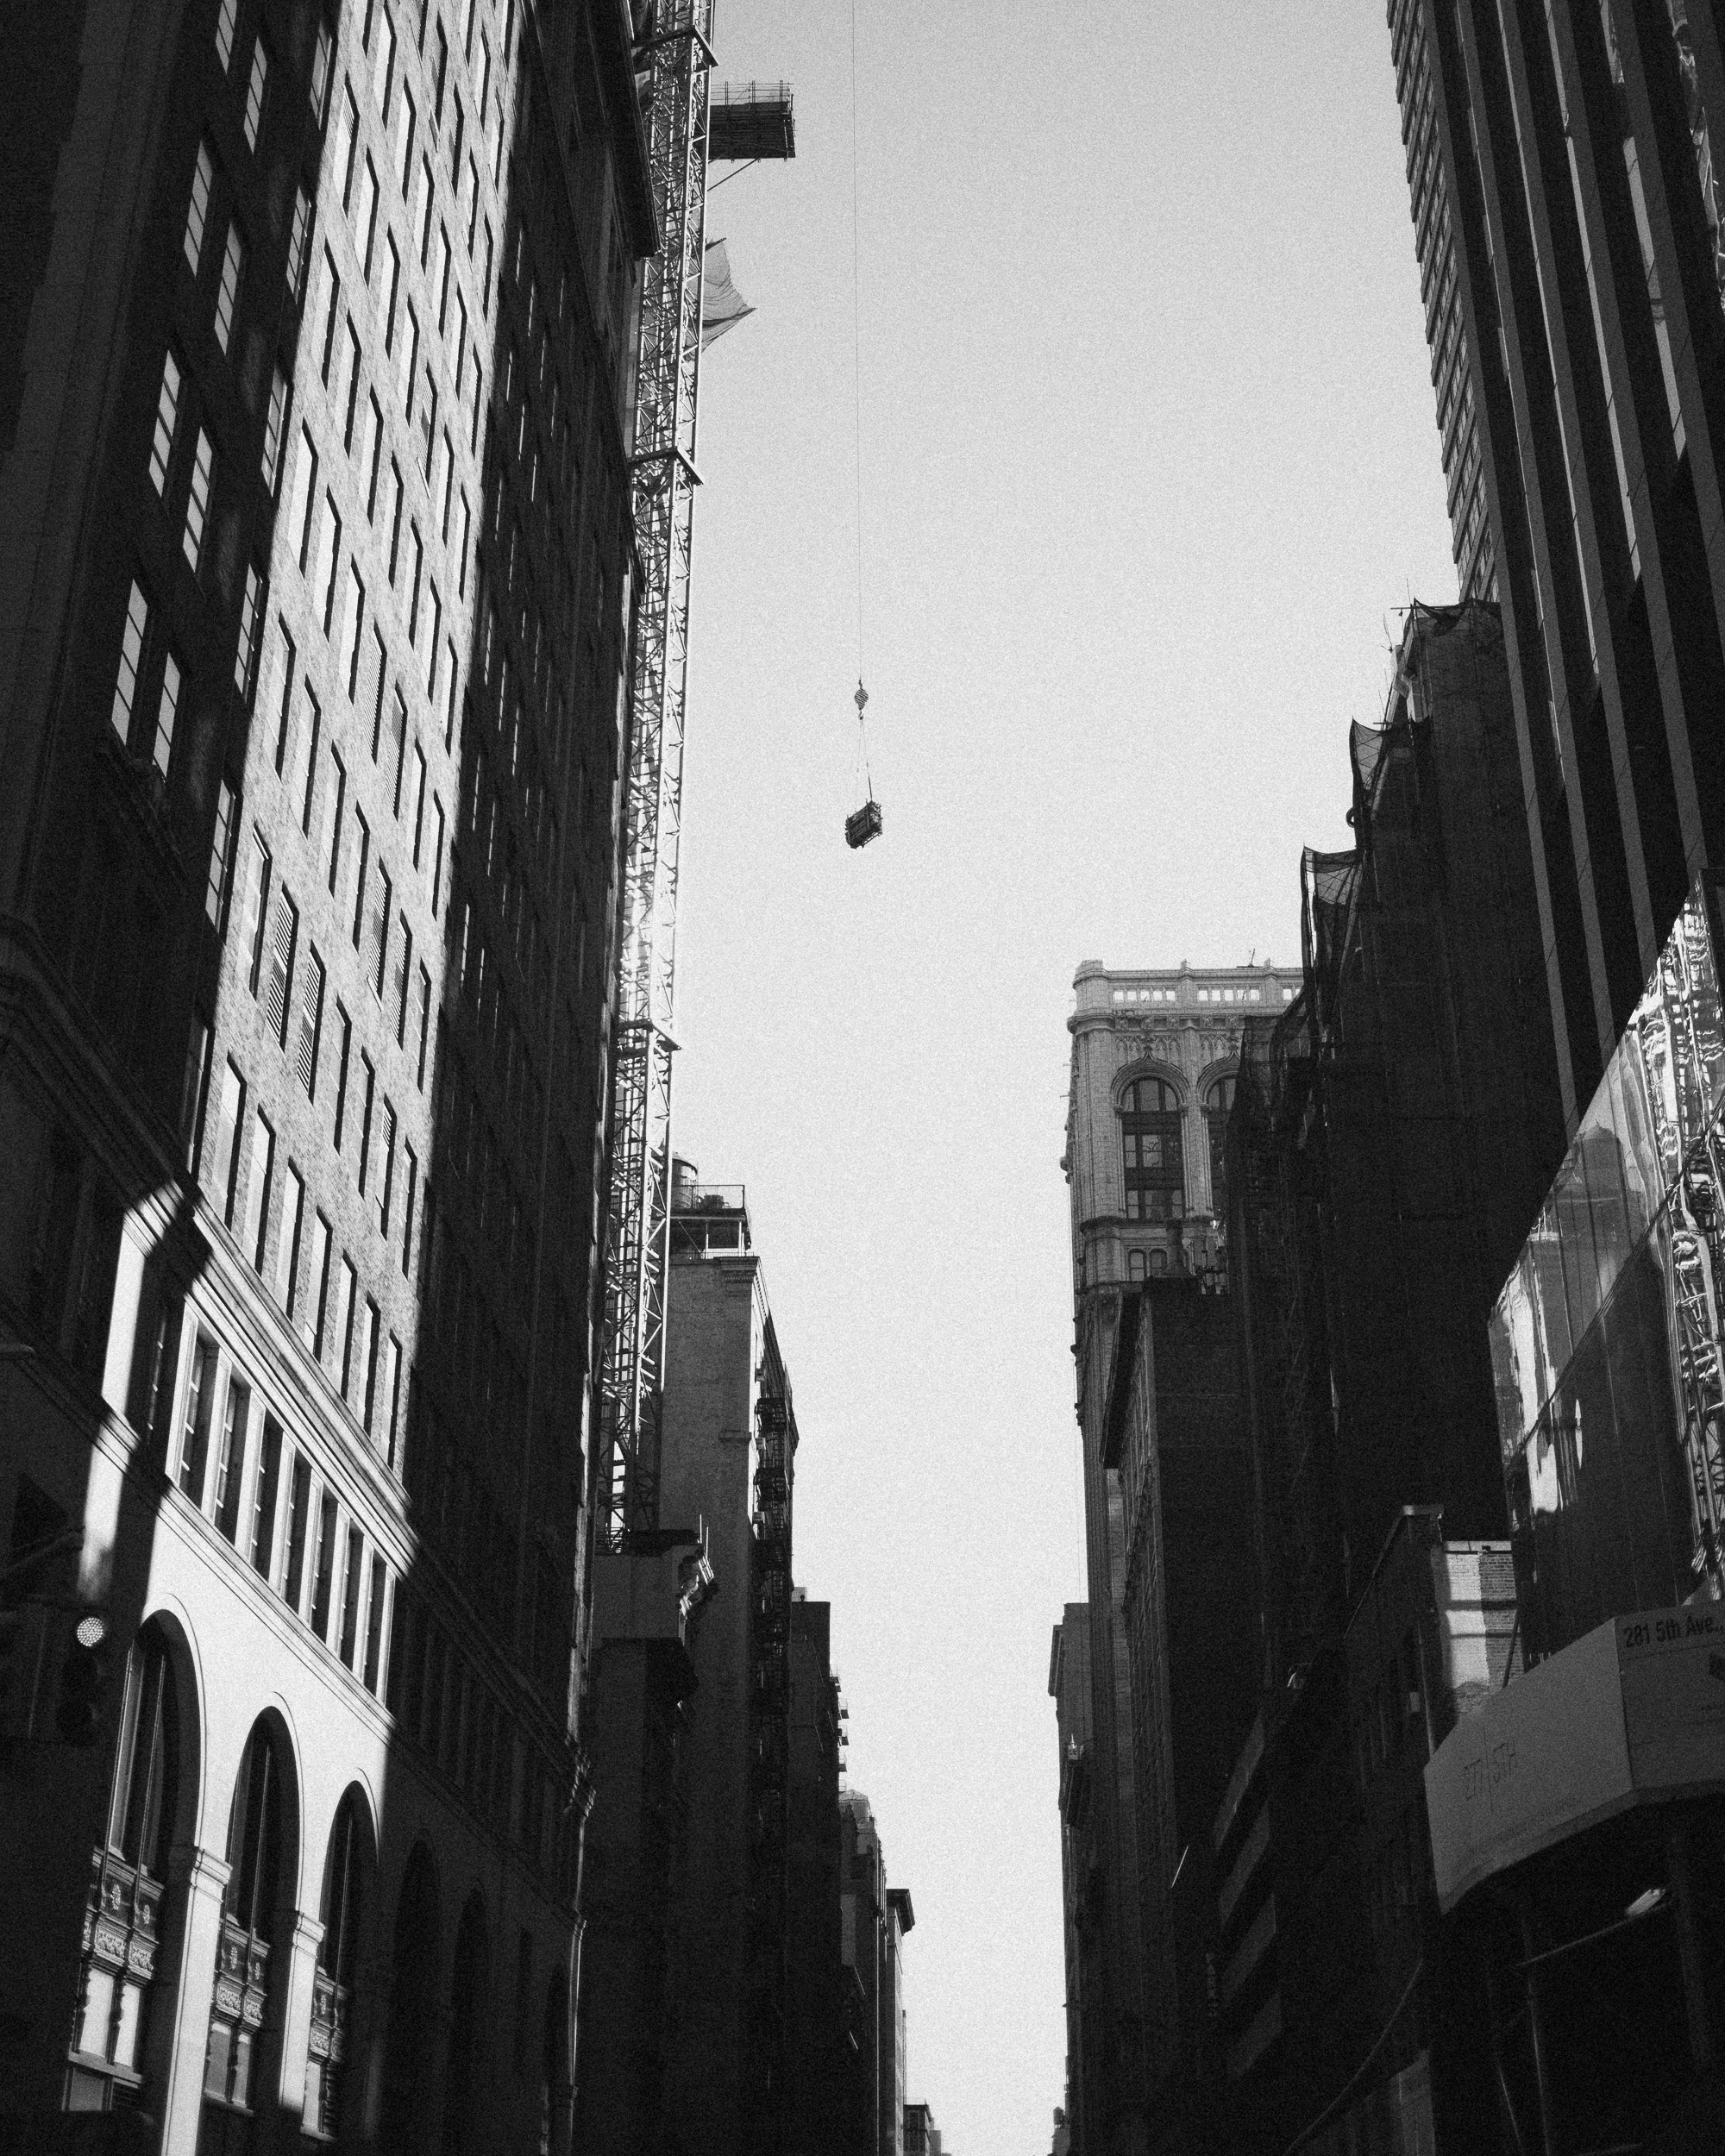 PLACES_NYC_071218_41.jpg